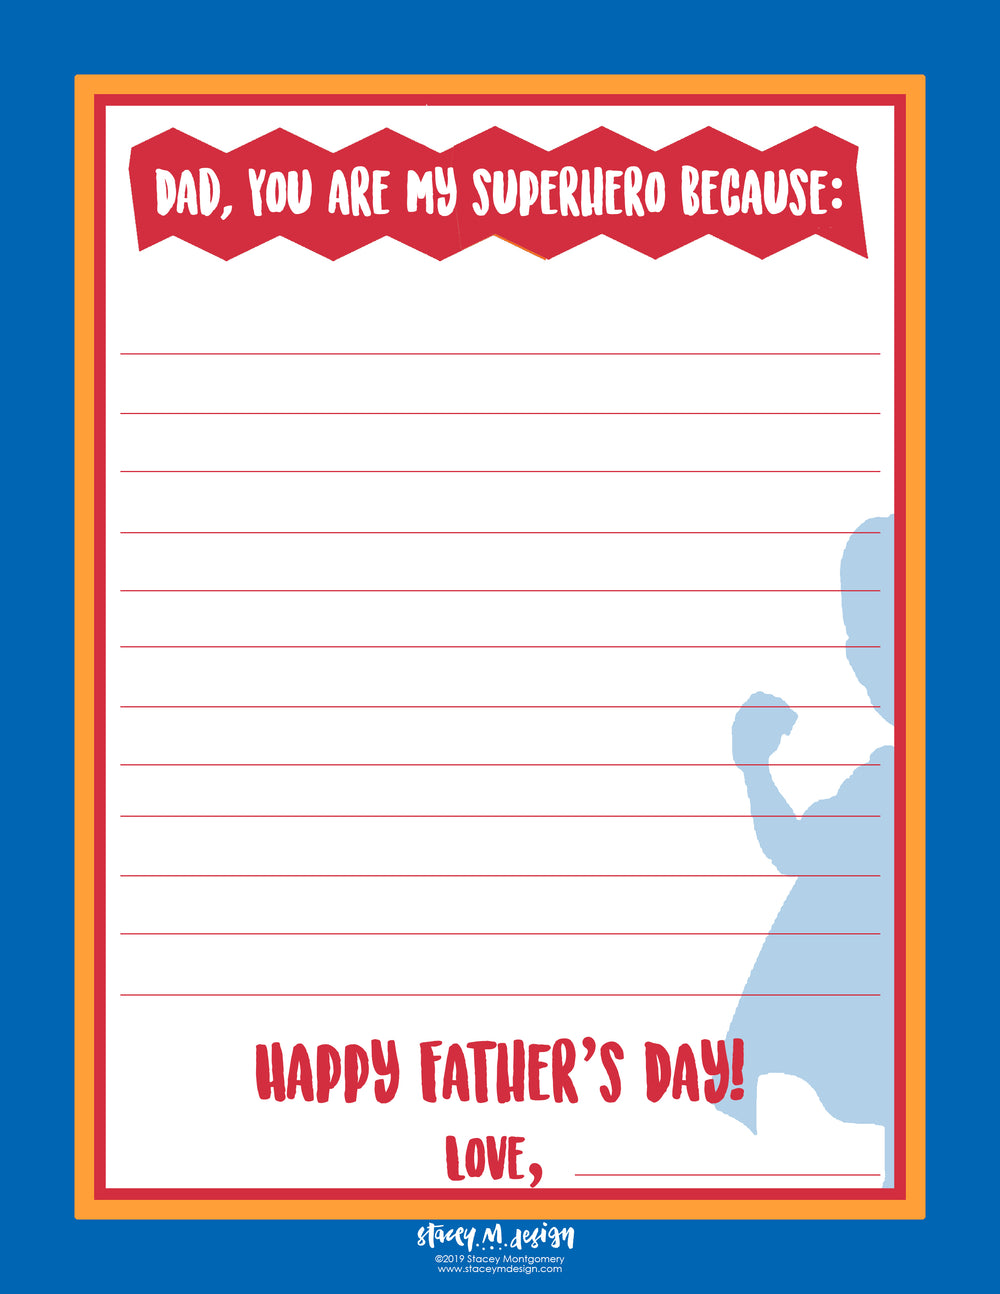 Free Download- Superhero Dad